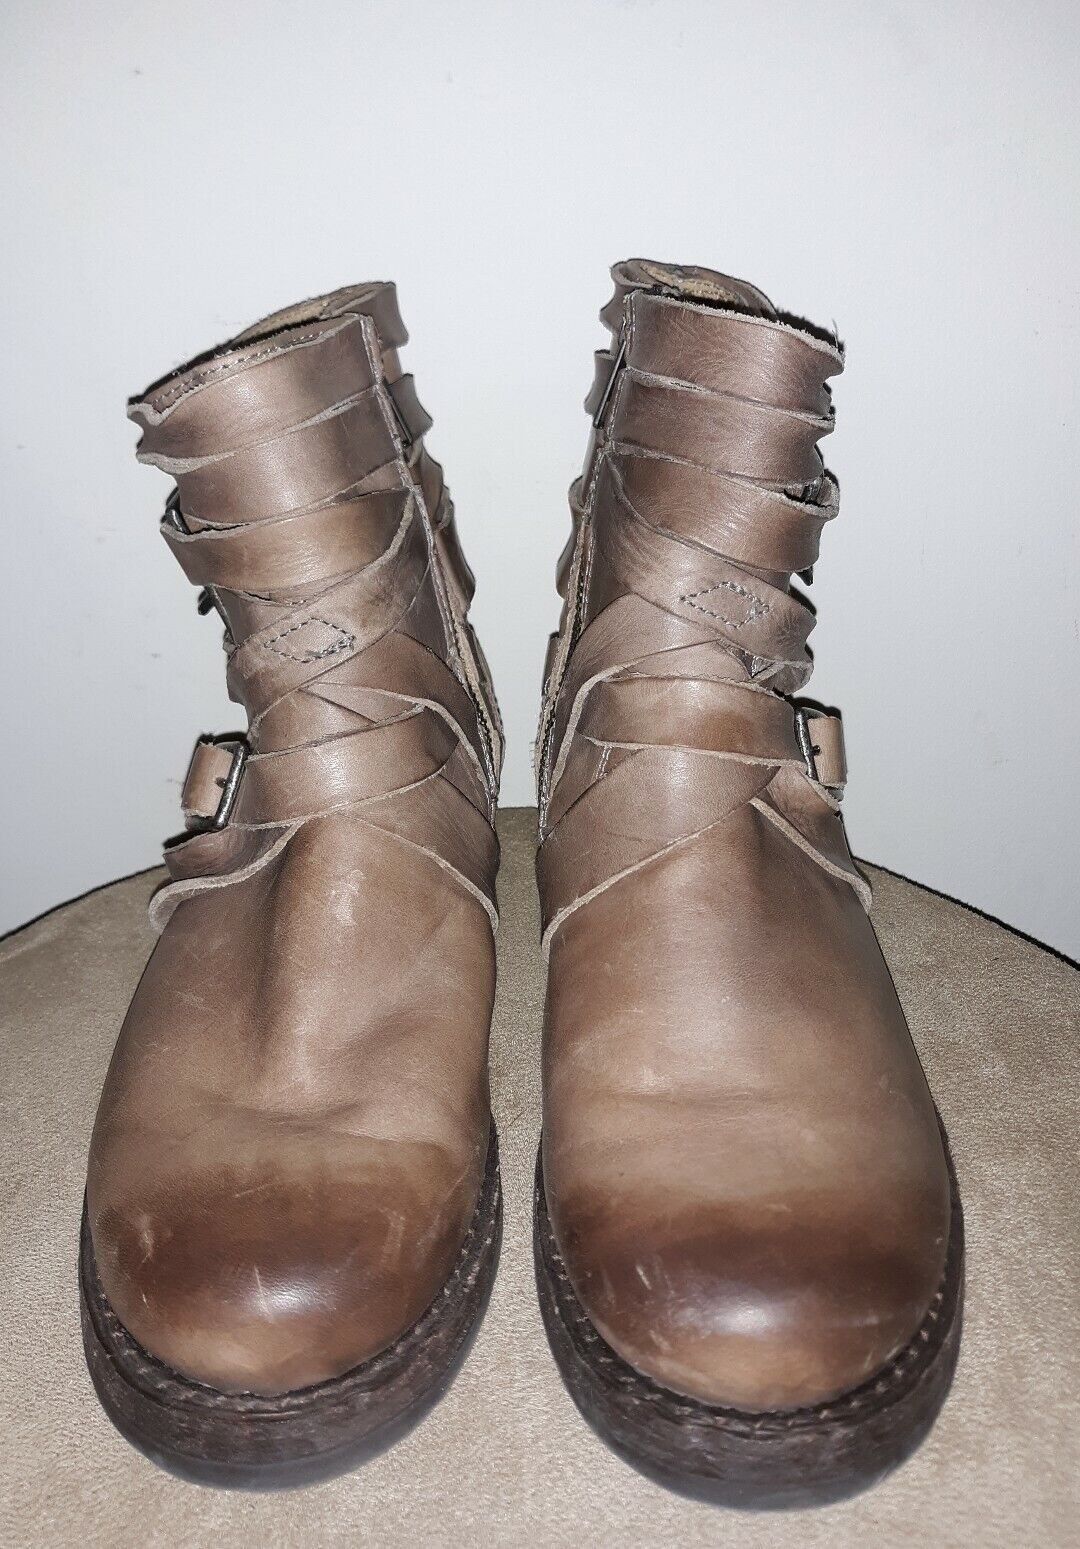 EUC Frye Brown Leather Pull On Ankle Boot Bootie Sz 6B Women's,Distressed Look